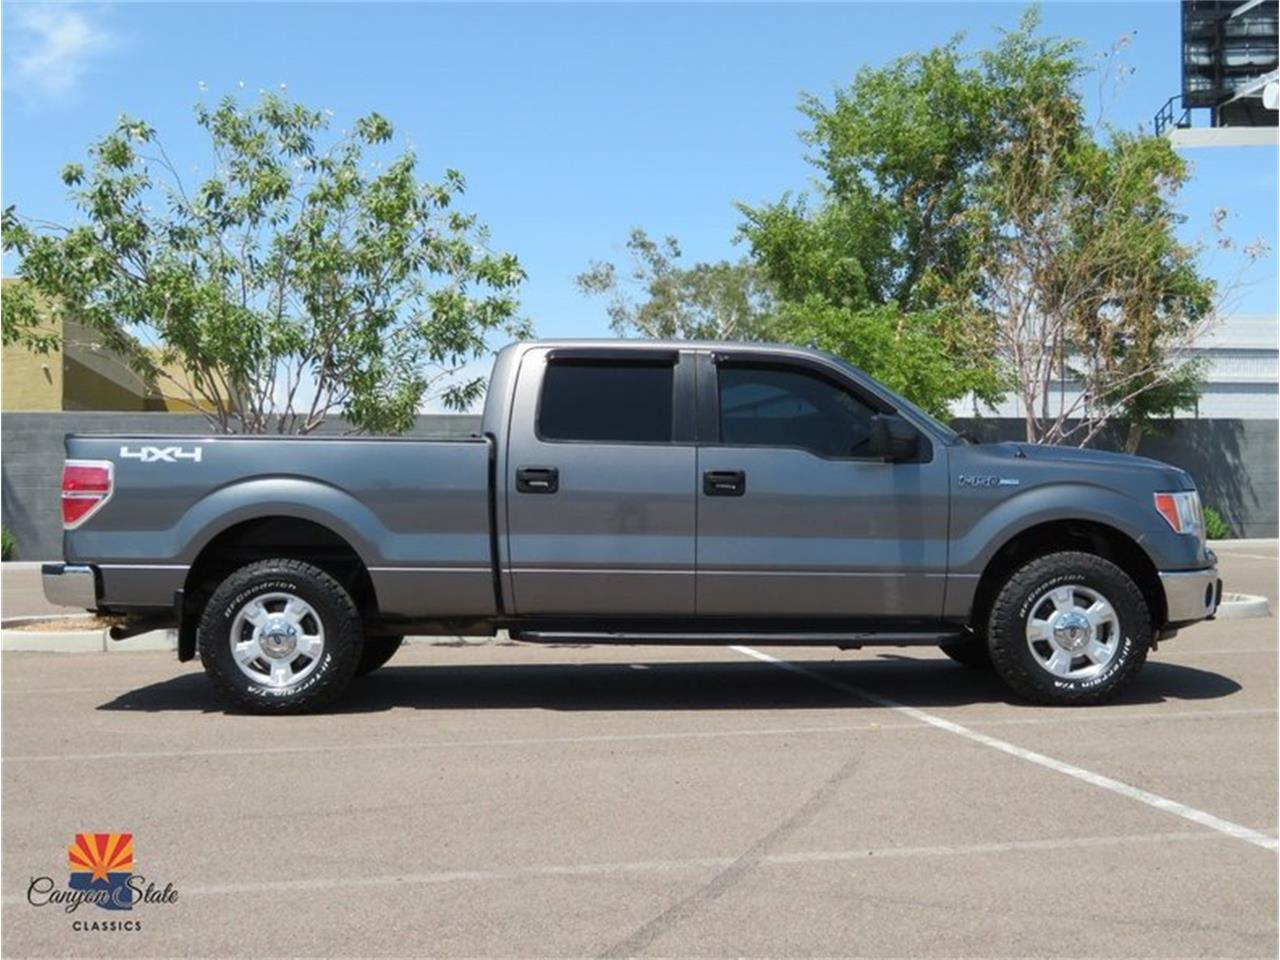 2014 Ford F150 for sale in Tempe, AZ – photo 34